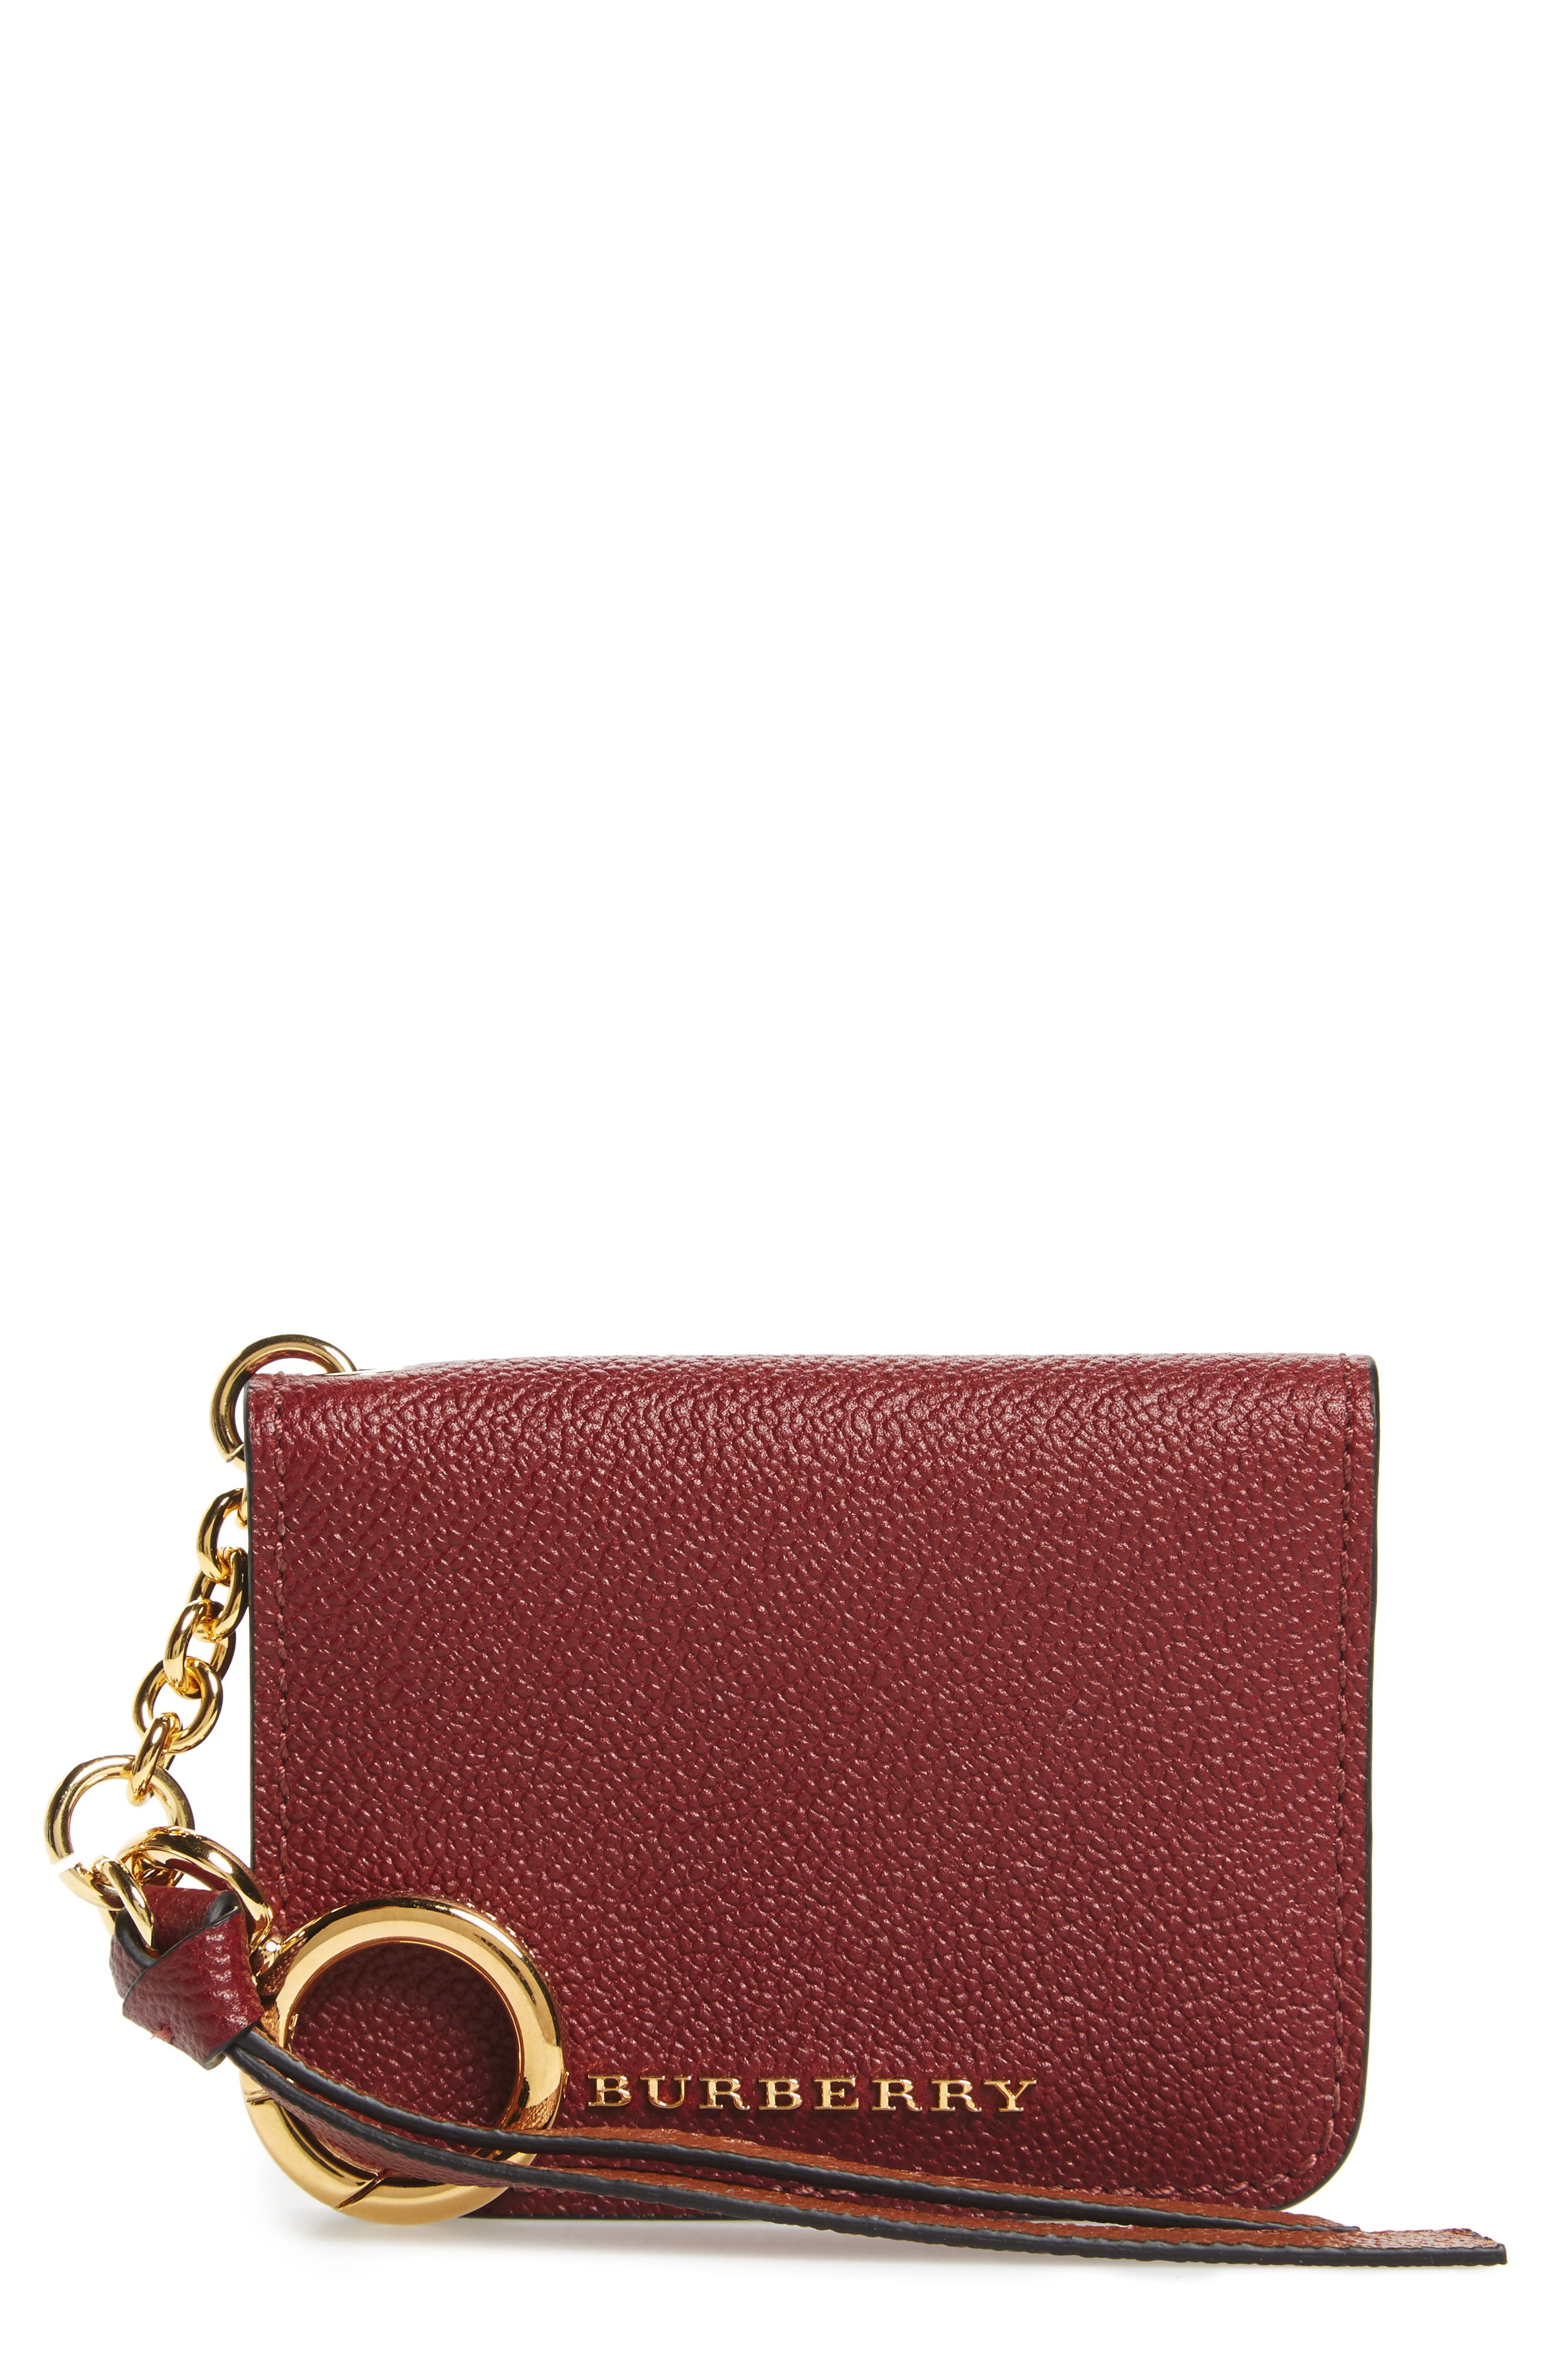 Main Image - Burberry Camberwellid Leather Card Case Bag Charm